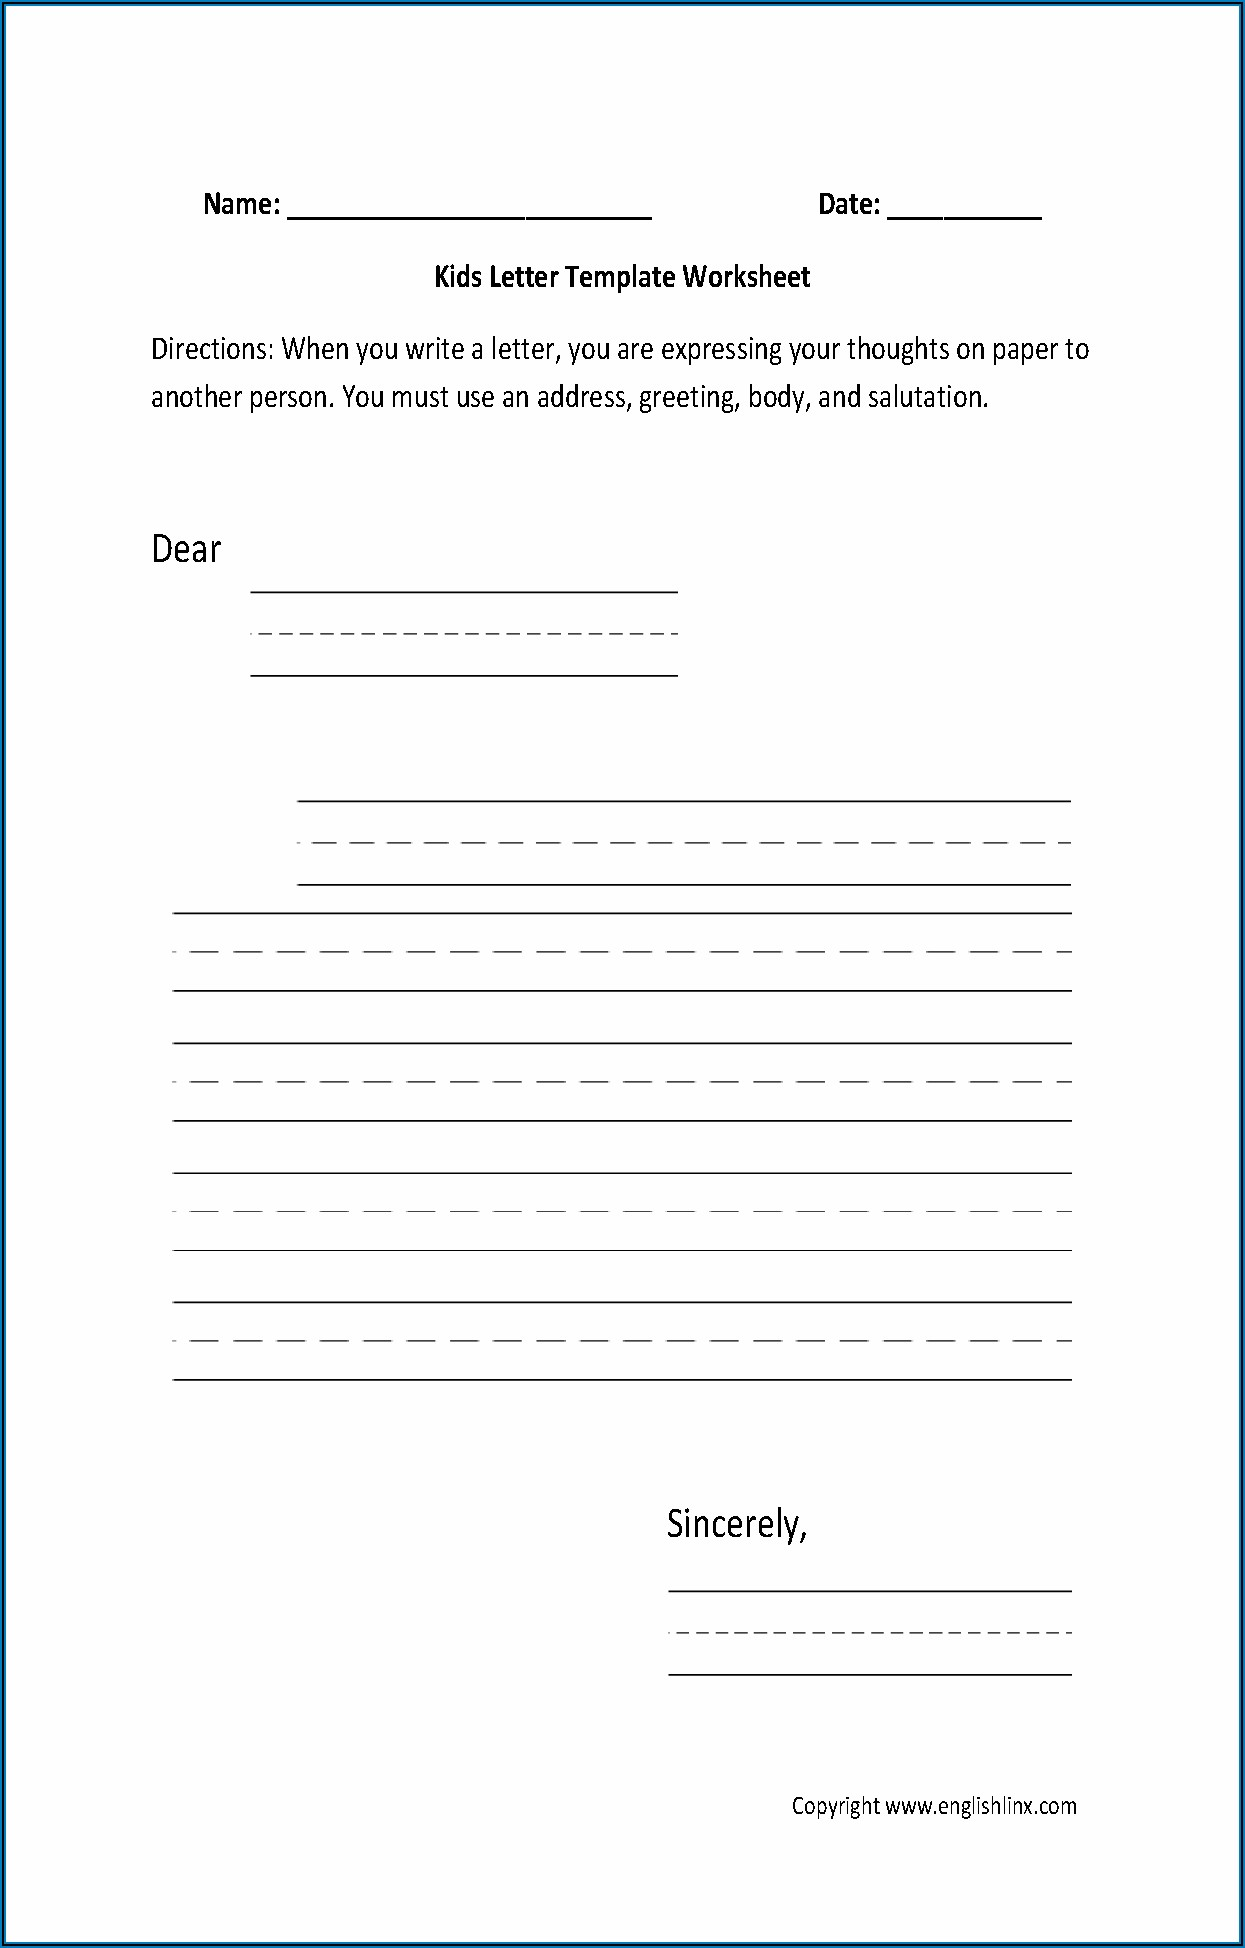 Esl Writing Worksheets For Adults Pdf